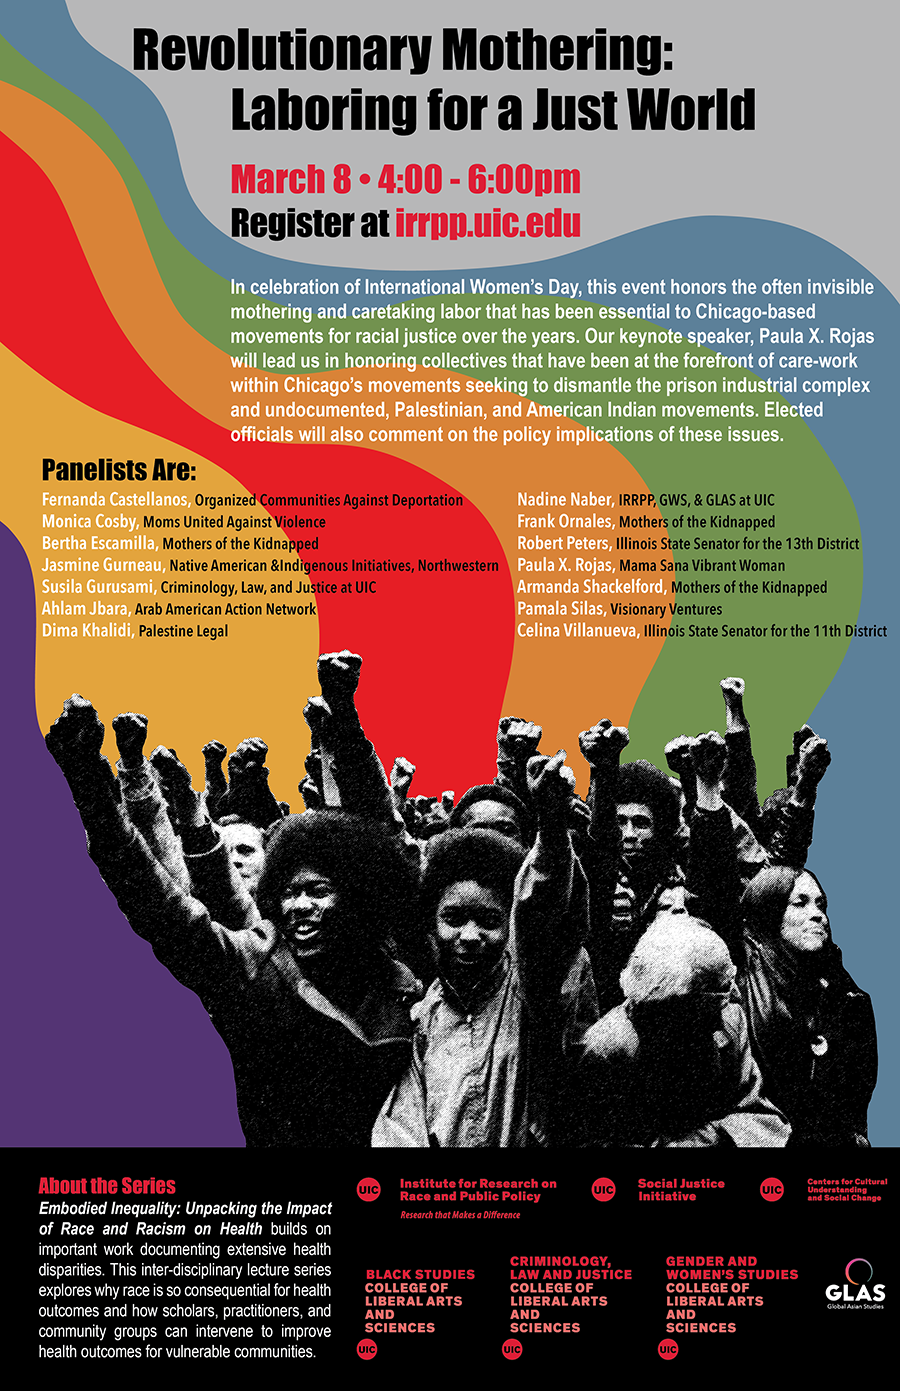 A colorful background with rainbow colors behind a black and white image of a crowd with raised fists and text about the Revolutionary Mothering event above it